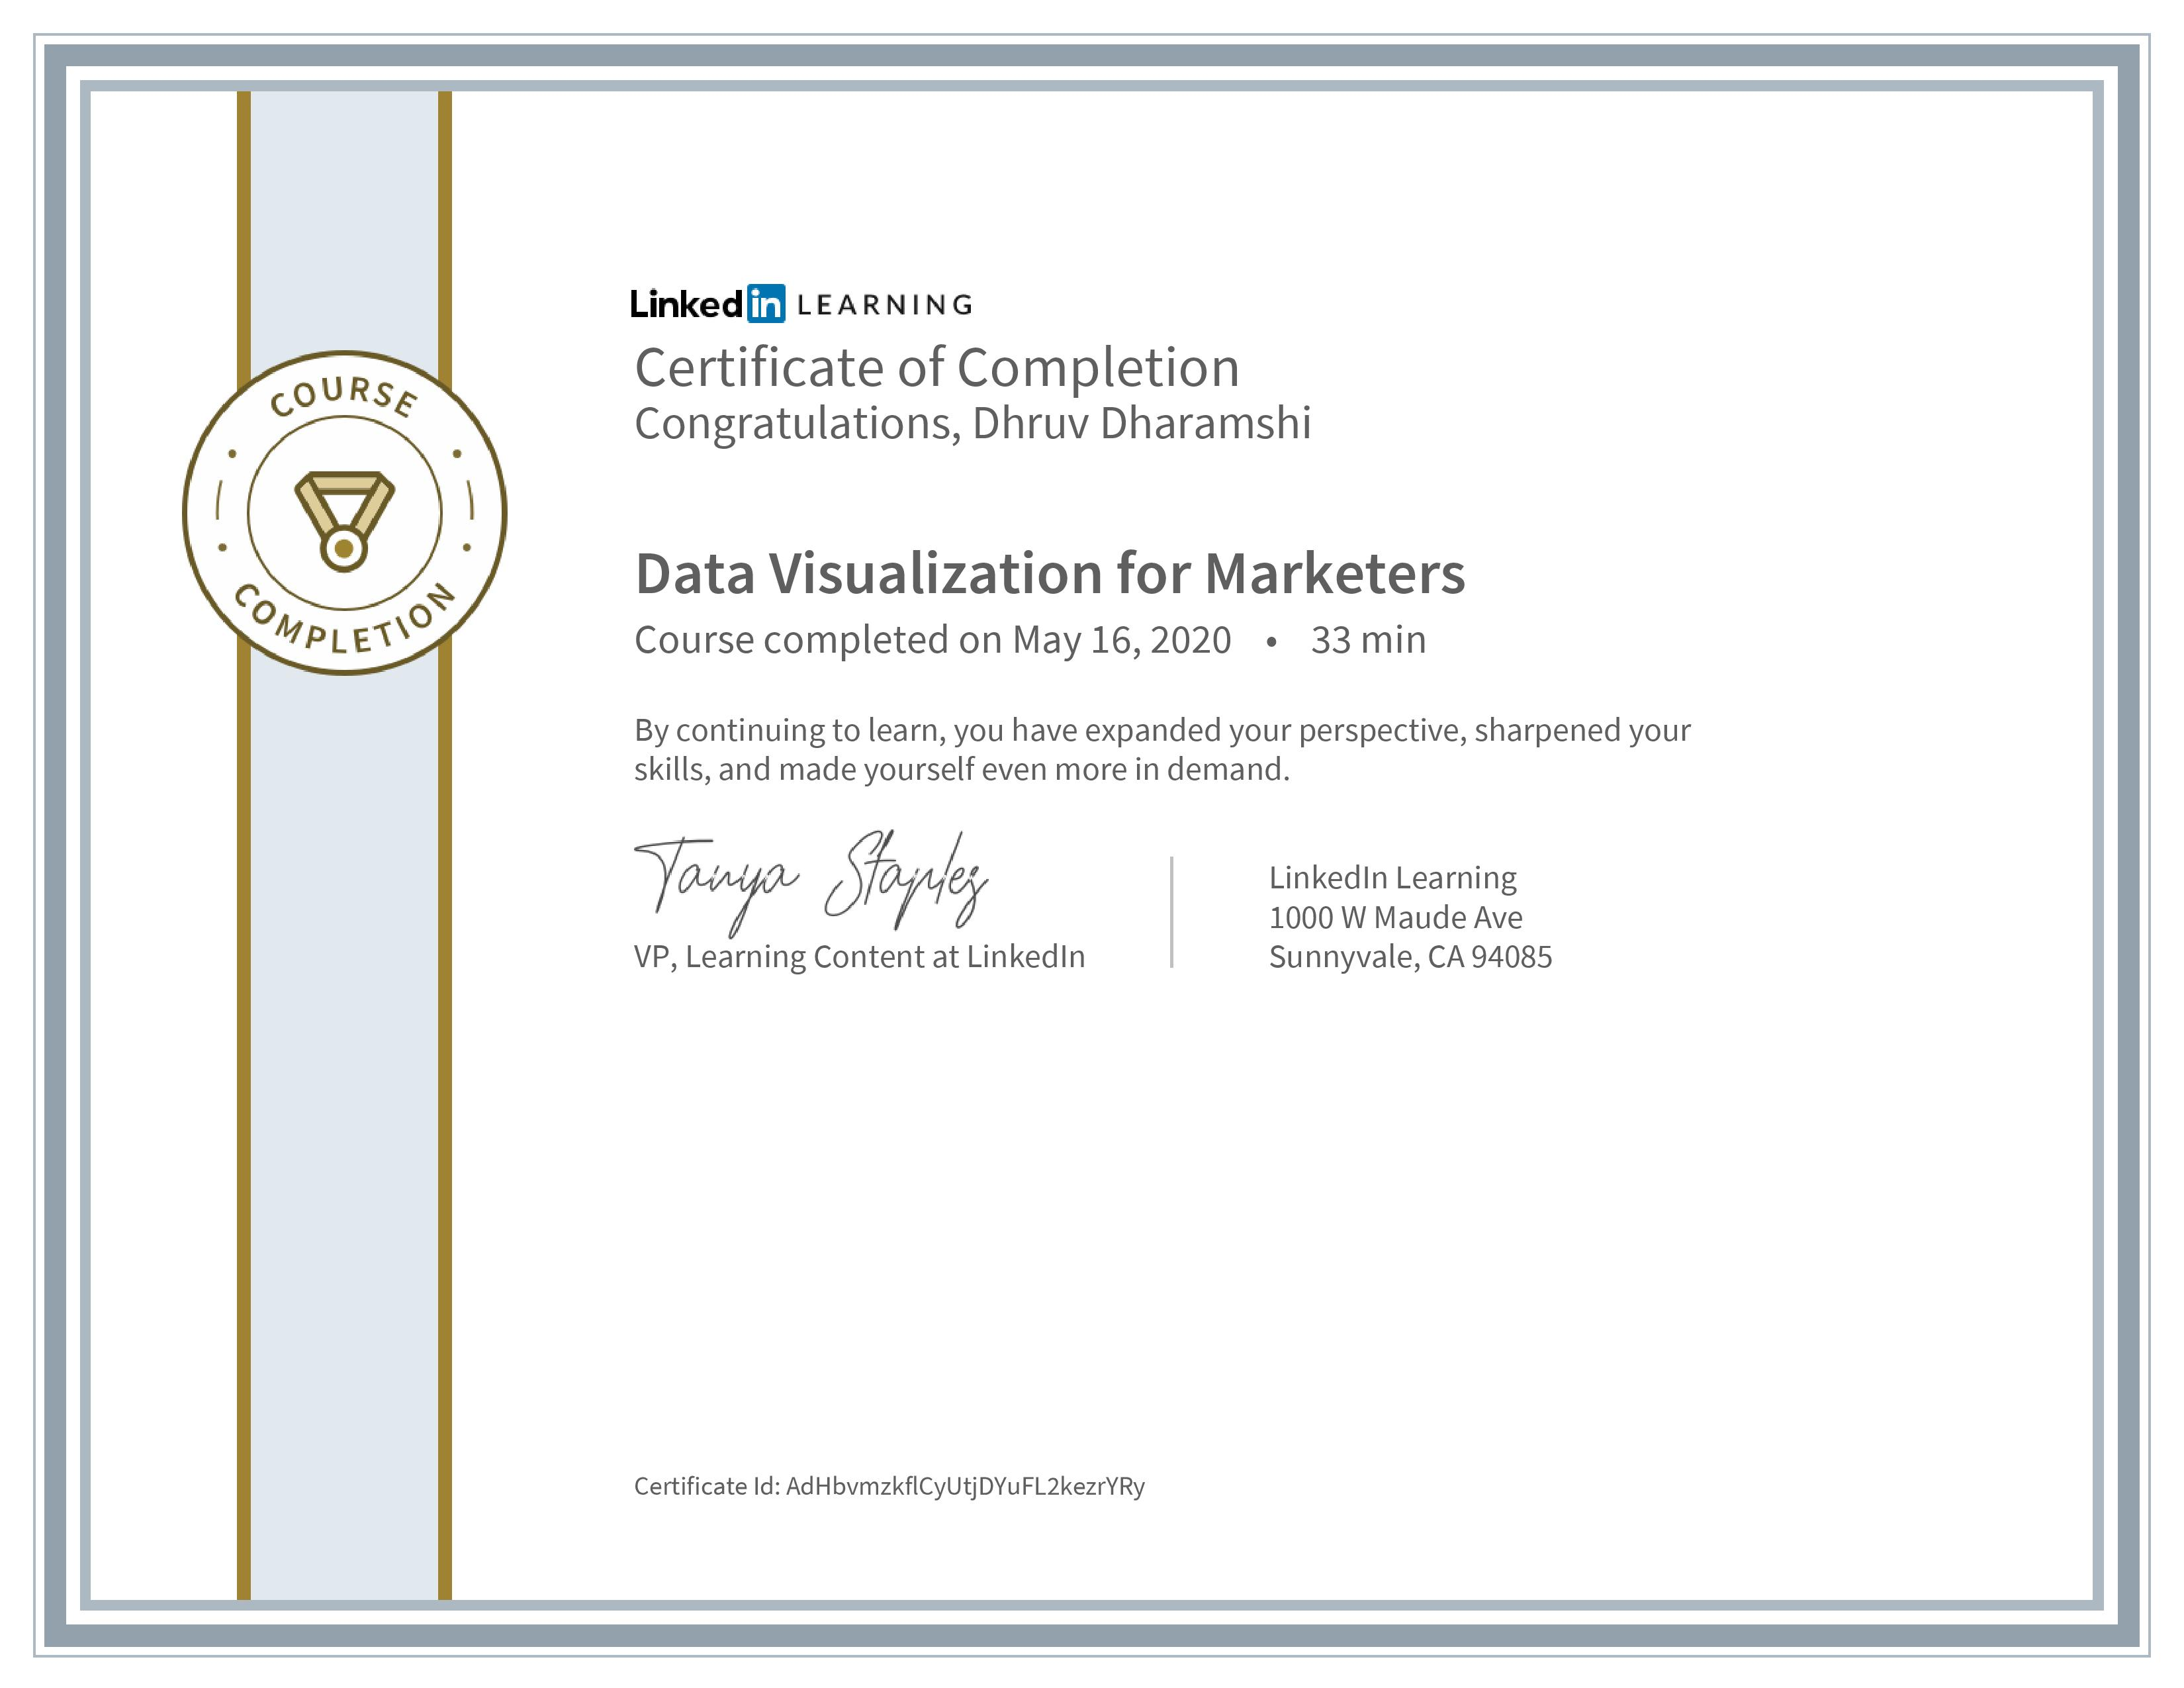 Data Visualization for Marketers